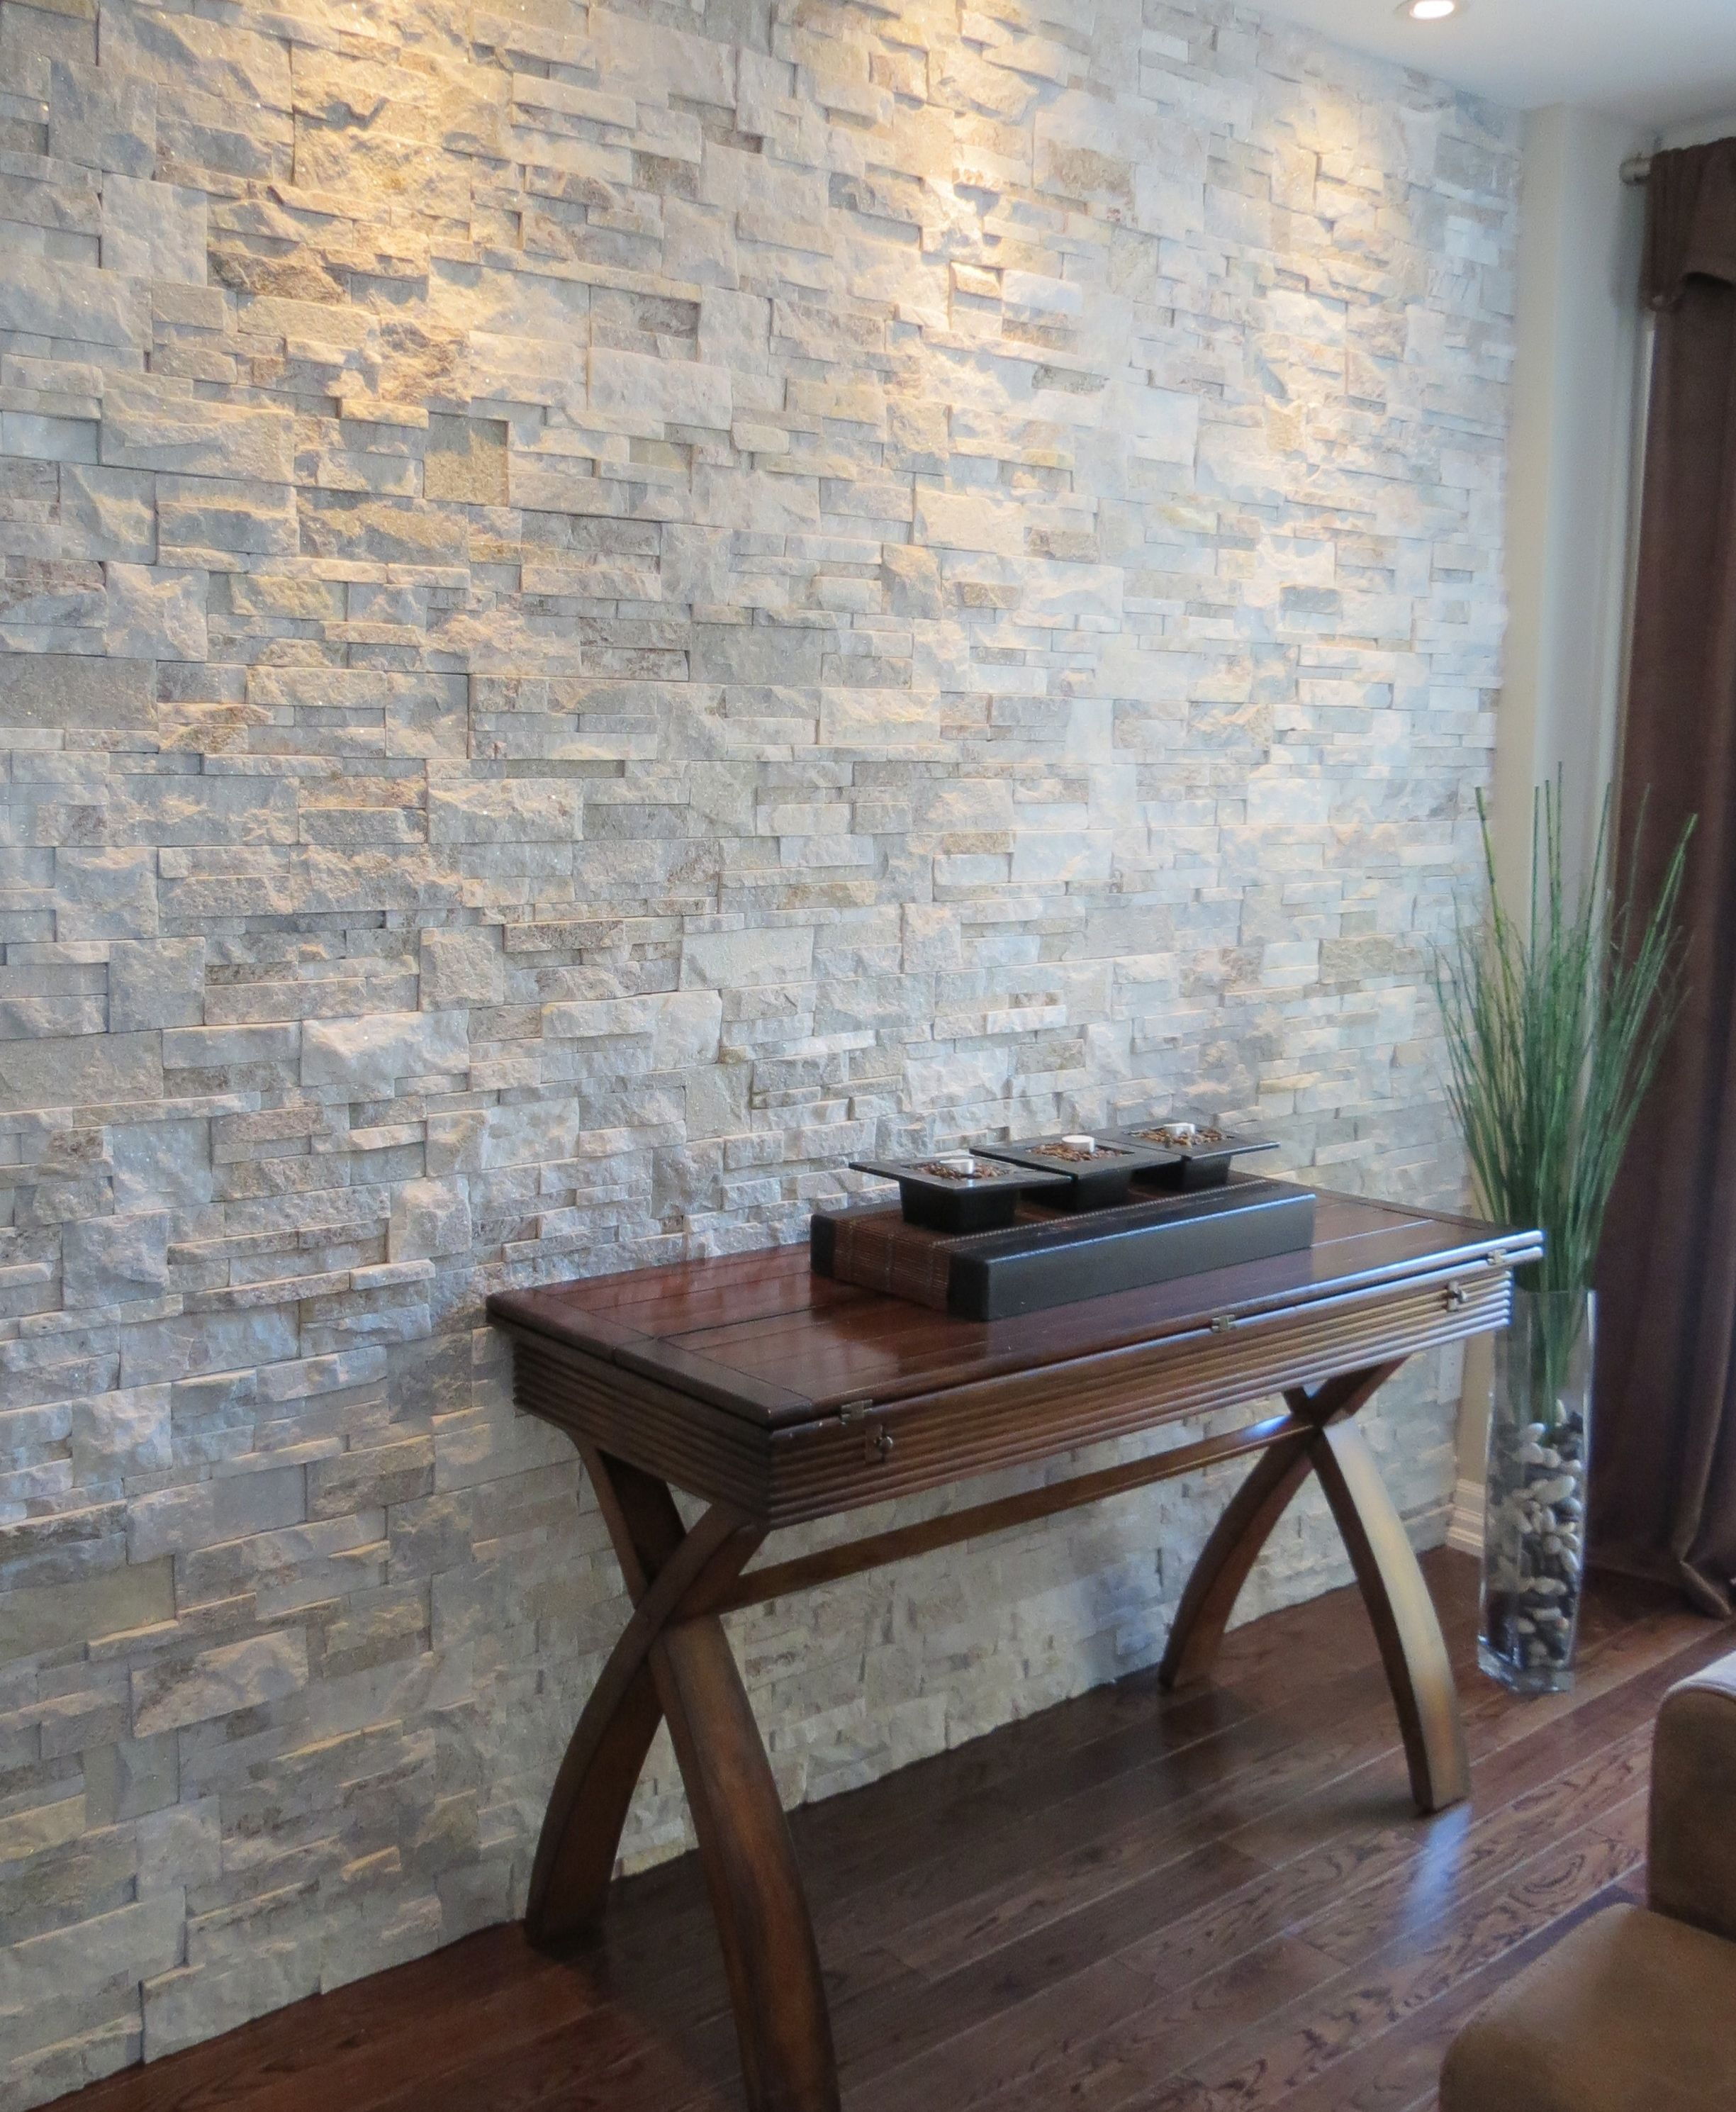 Silk Stone Wall Accent: Quartzite Ledge Stone In Oyster Shell On An Interior